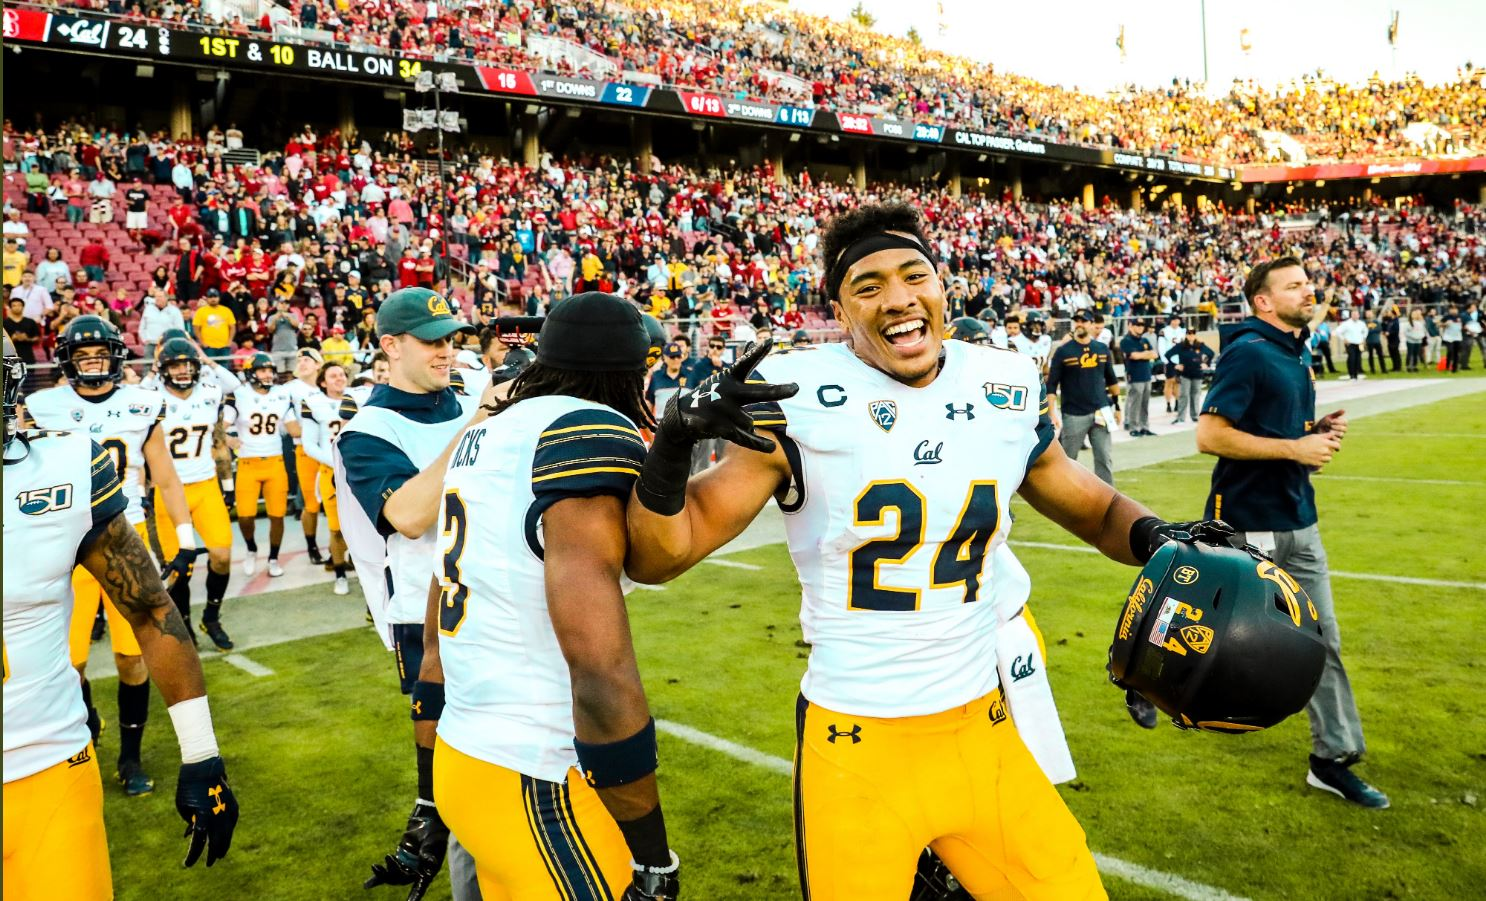 Week 14 2019 P5 Bowl Eligibility Report: A Wild Week in the Pac-12